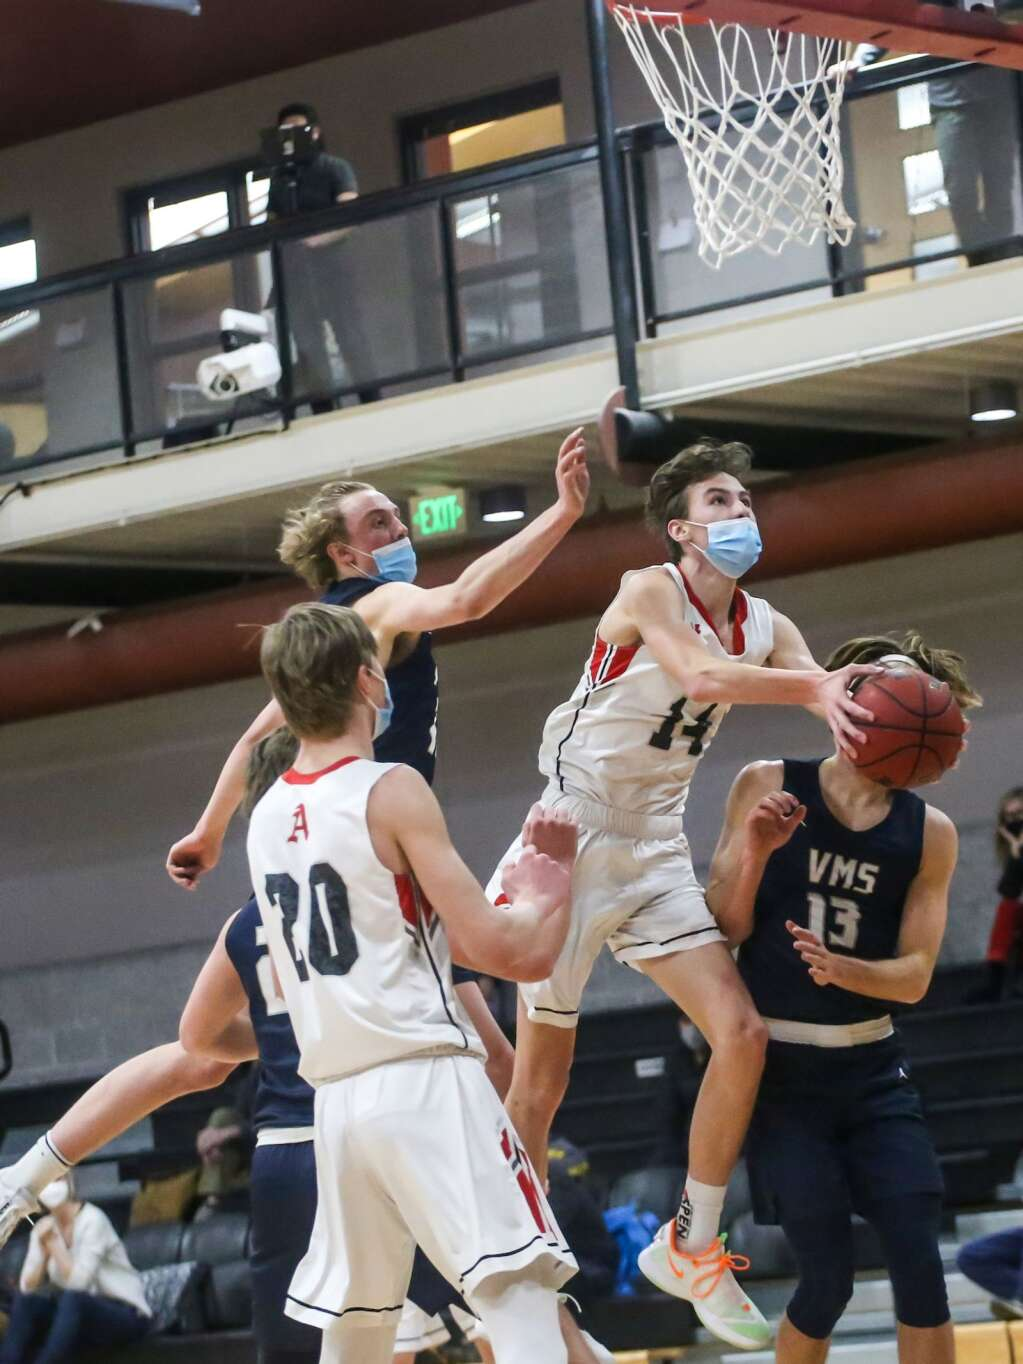 The Aspen High School boys basketball team plays Vail Mountain School on Monday, March 1, 2021, inside the AHS gymnasium. Photo by Austin Colbert/The Aspen Times.